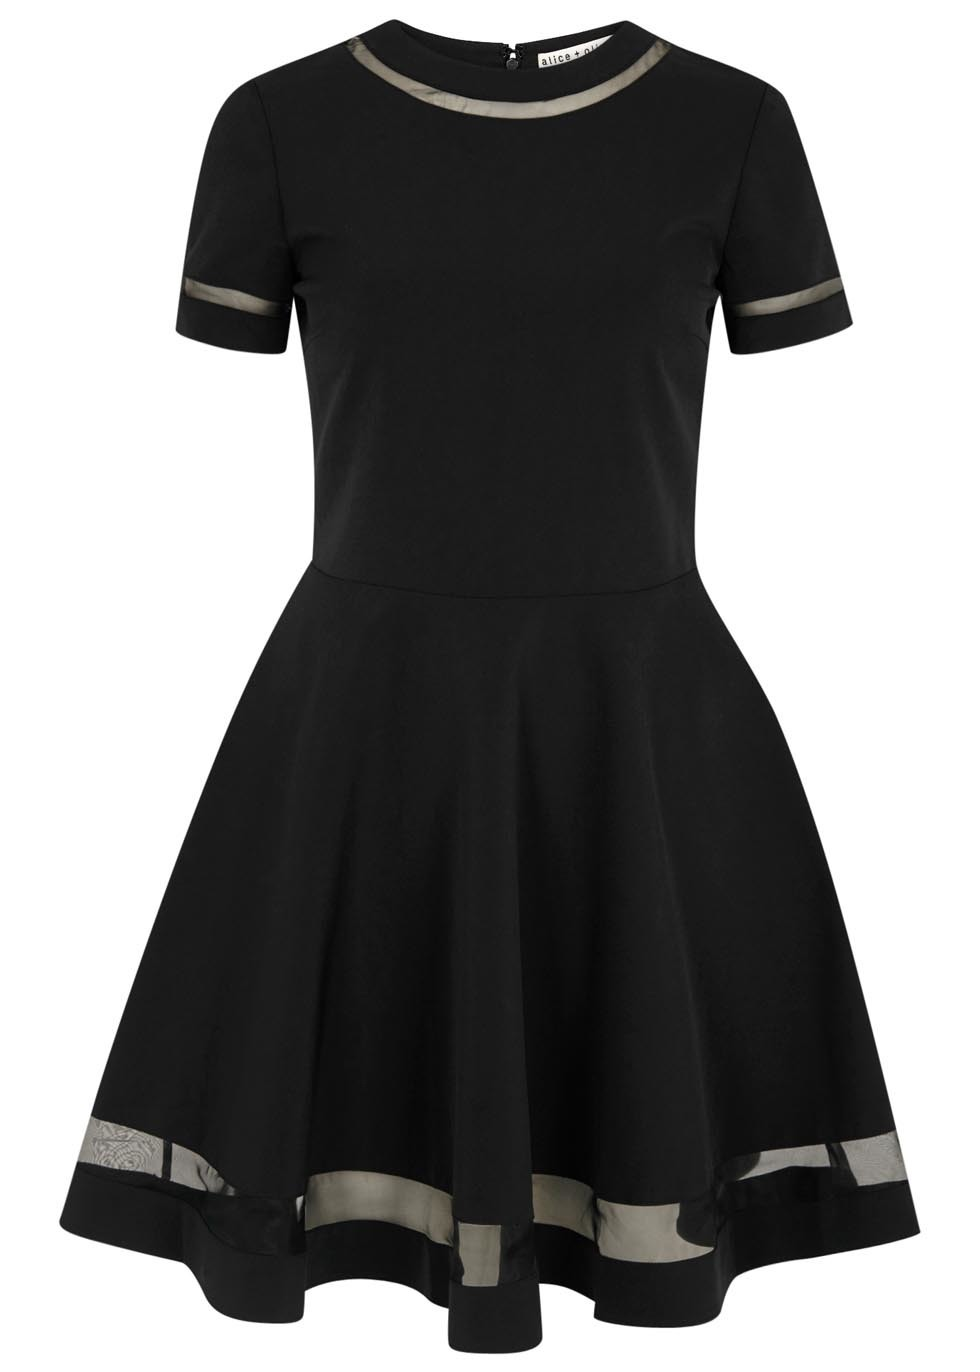 Frances Black Crepe And Organza Dress - length: mid thigh; pattern: plain; predominant colour: black; occasions: evening, occasion; fit: fitted at waist & bust; style: fit & flare; neckline: crew; sleeve length: short sleeve; sleeve style: standard; pattern type: fabric; texture group: other - light to midweight; fibres: nylon - stretch; season: a/w 2015; wardrobe: event